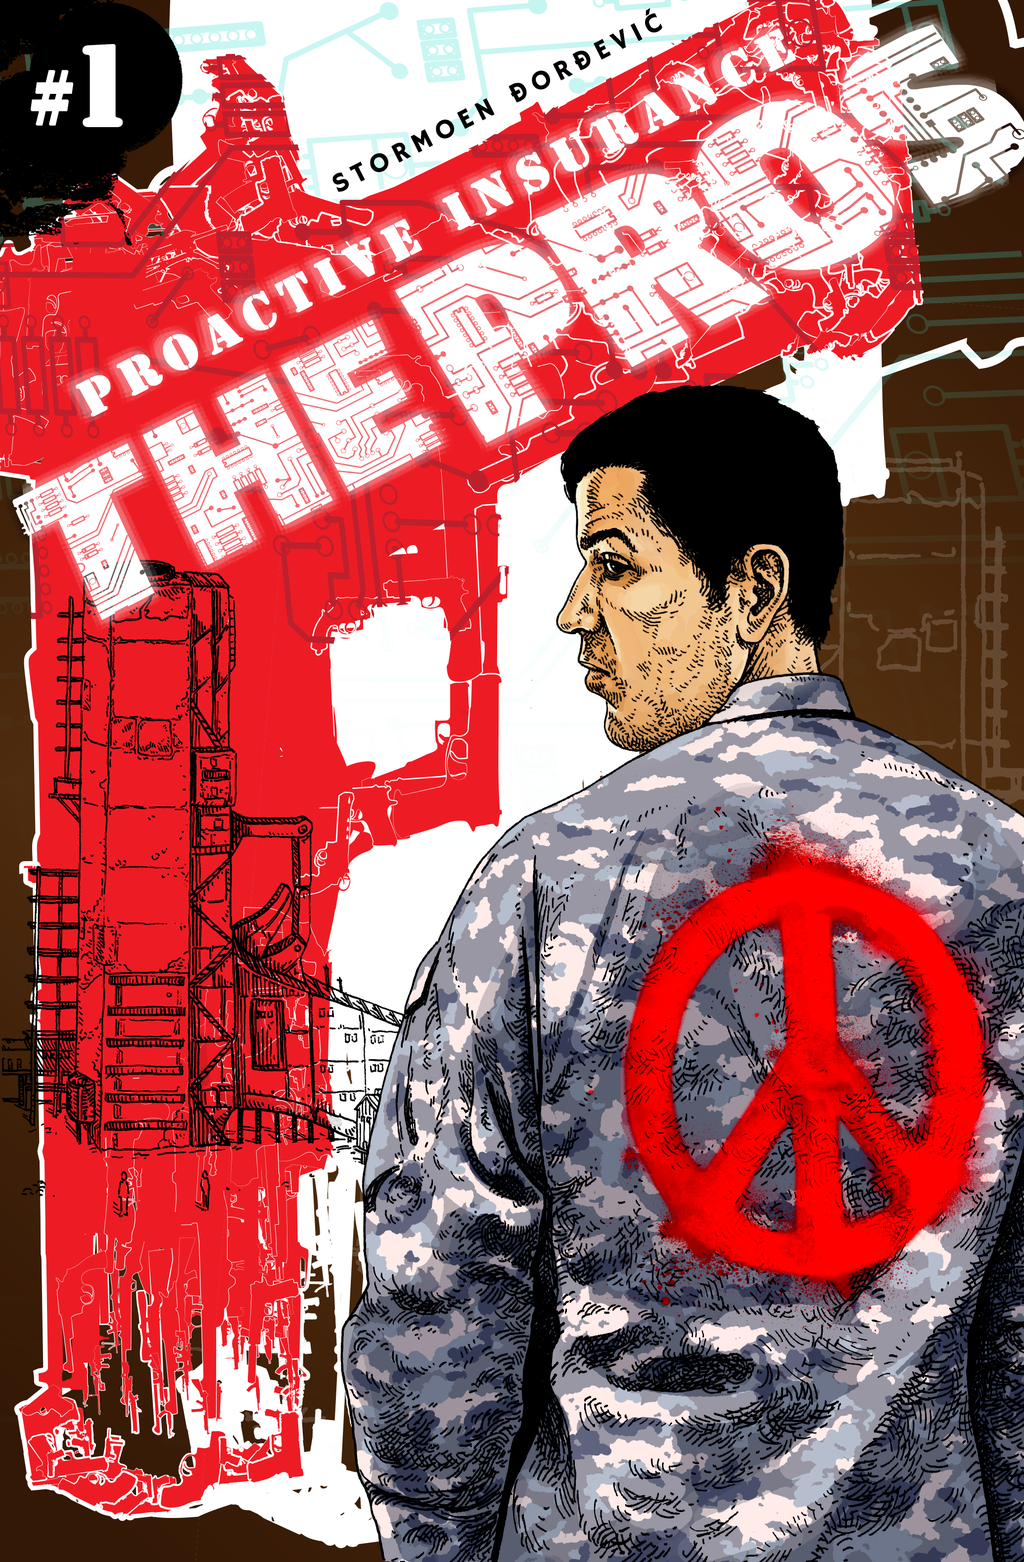 The Pros cover issue 1